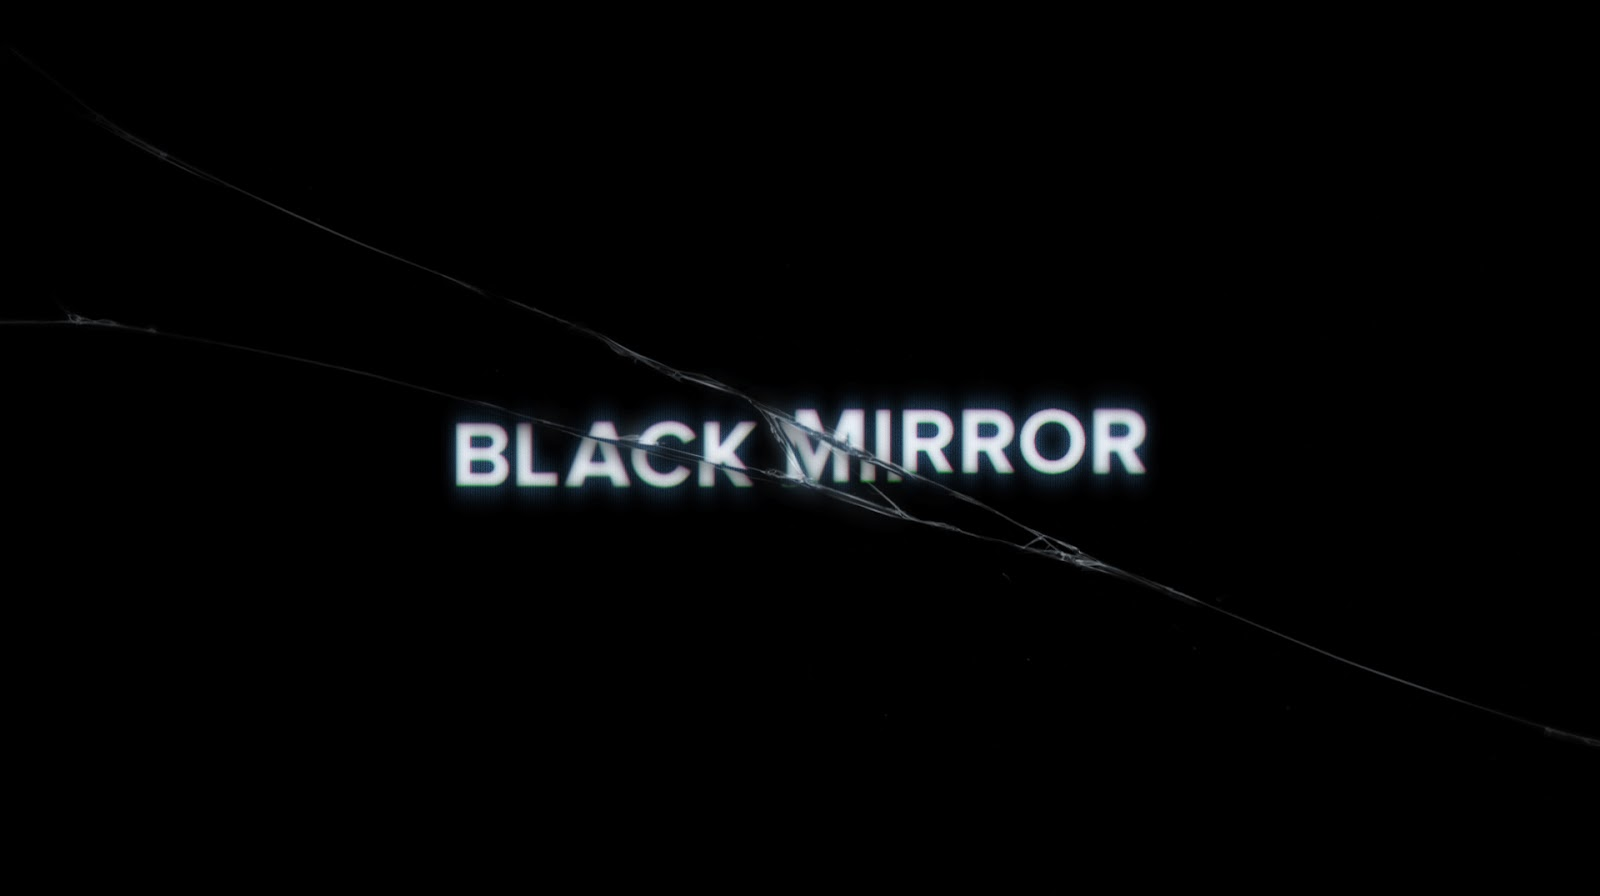 Black Mirror images